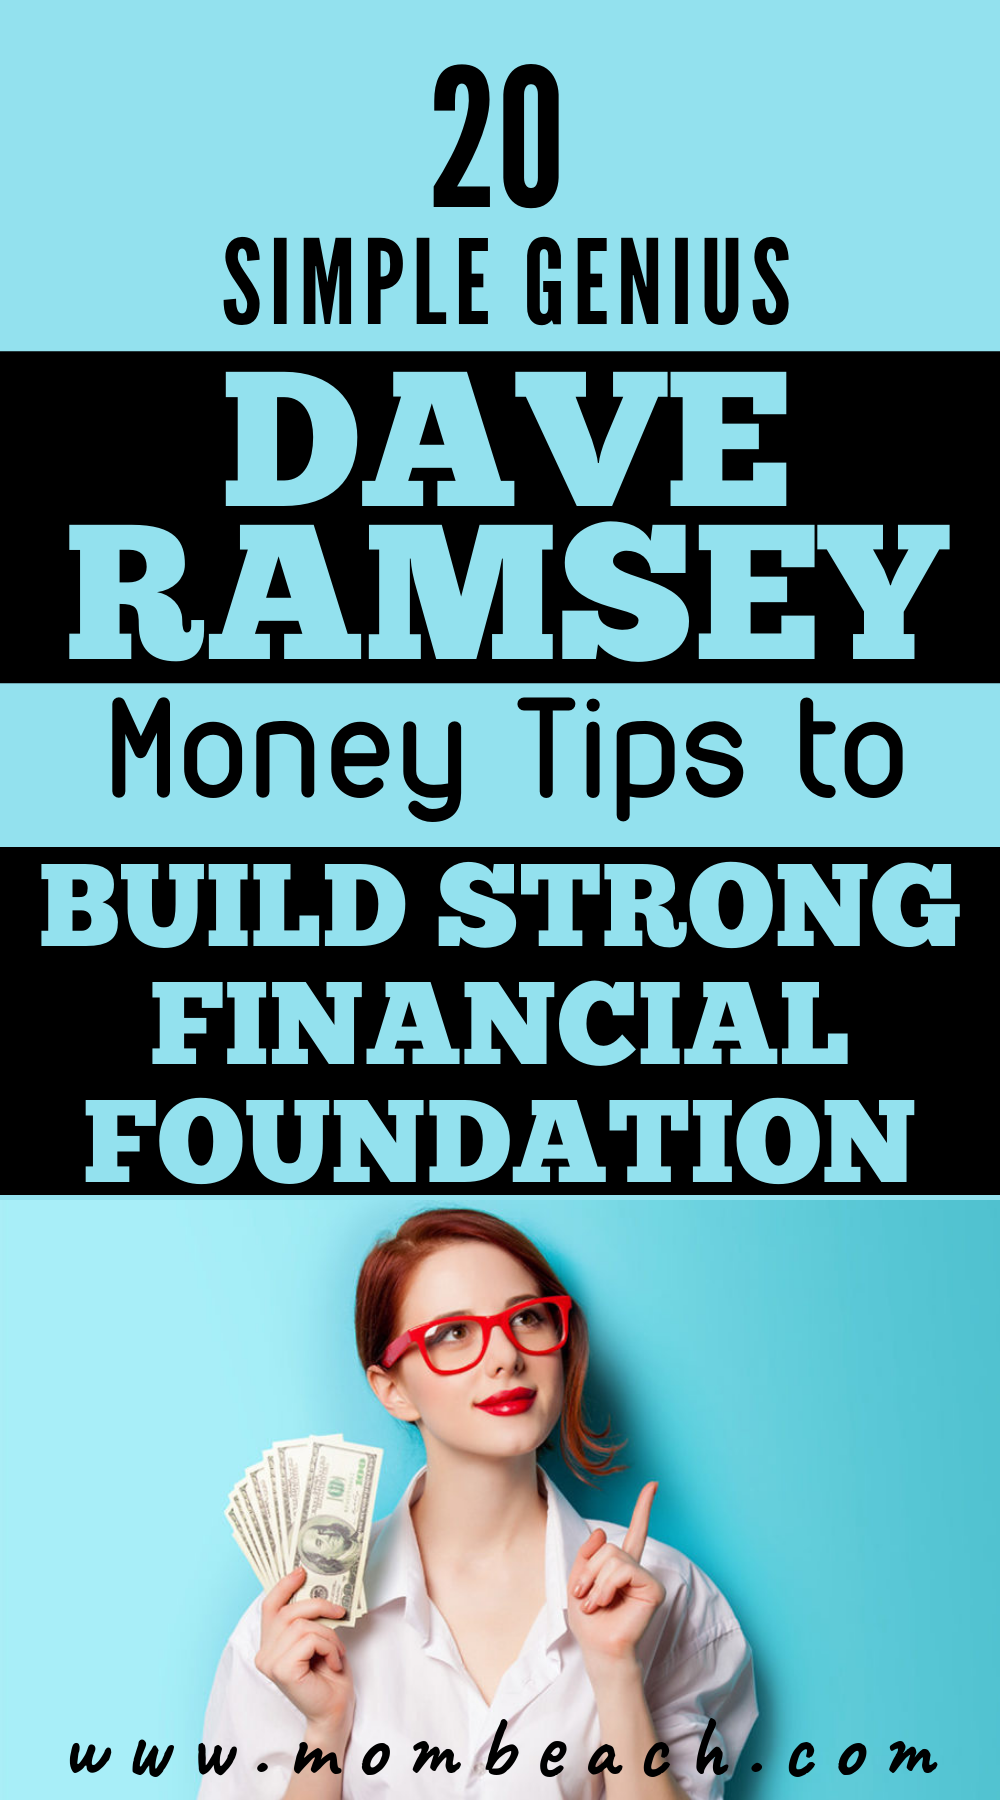 Build a strong financial foundation now! Check out these 20 super simple money tips from Dave Ramsey that he wants you to know now! Pay off your family's debt quick and easy by following Dave Ramsey's money saving tips. You can get out of your debt faster by following this financial guru's advice. #payoffdebt #debtpayoff #daveramsey #debtsnowball #moneysavingtips #budgeting #savemoney #howtosavemoney #financialpeace #debt